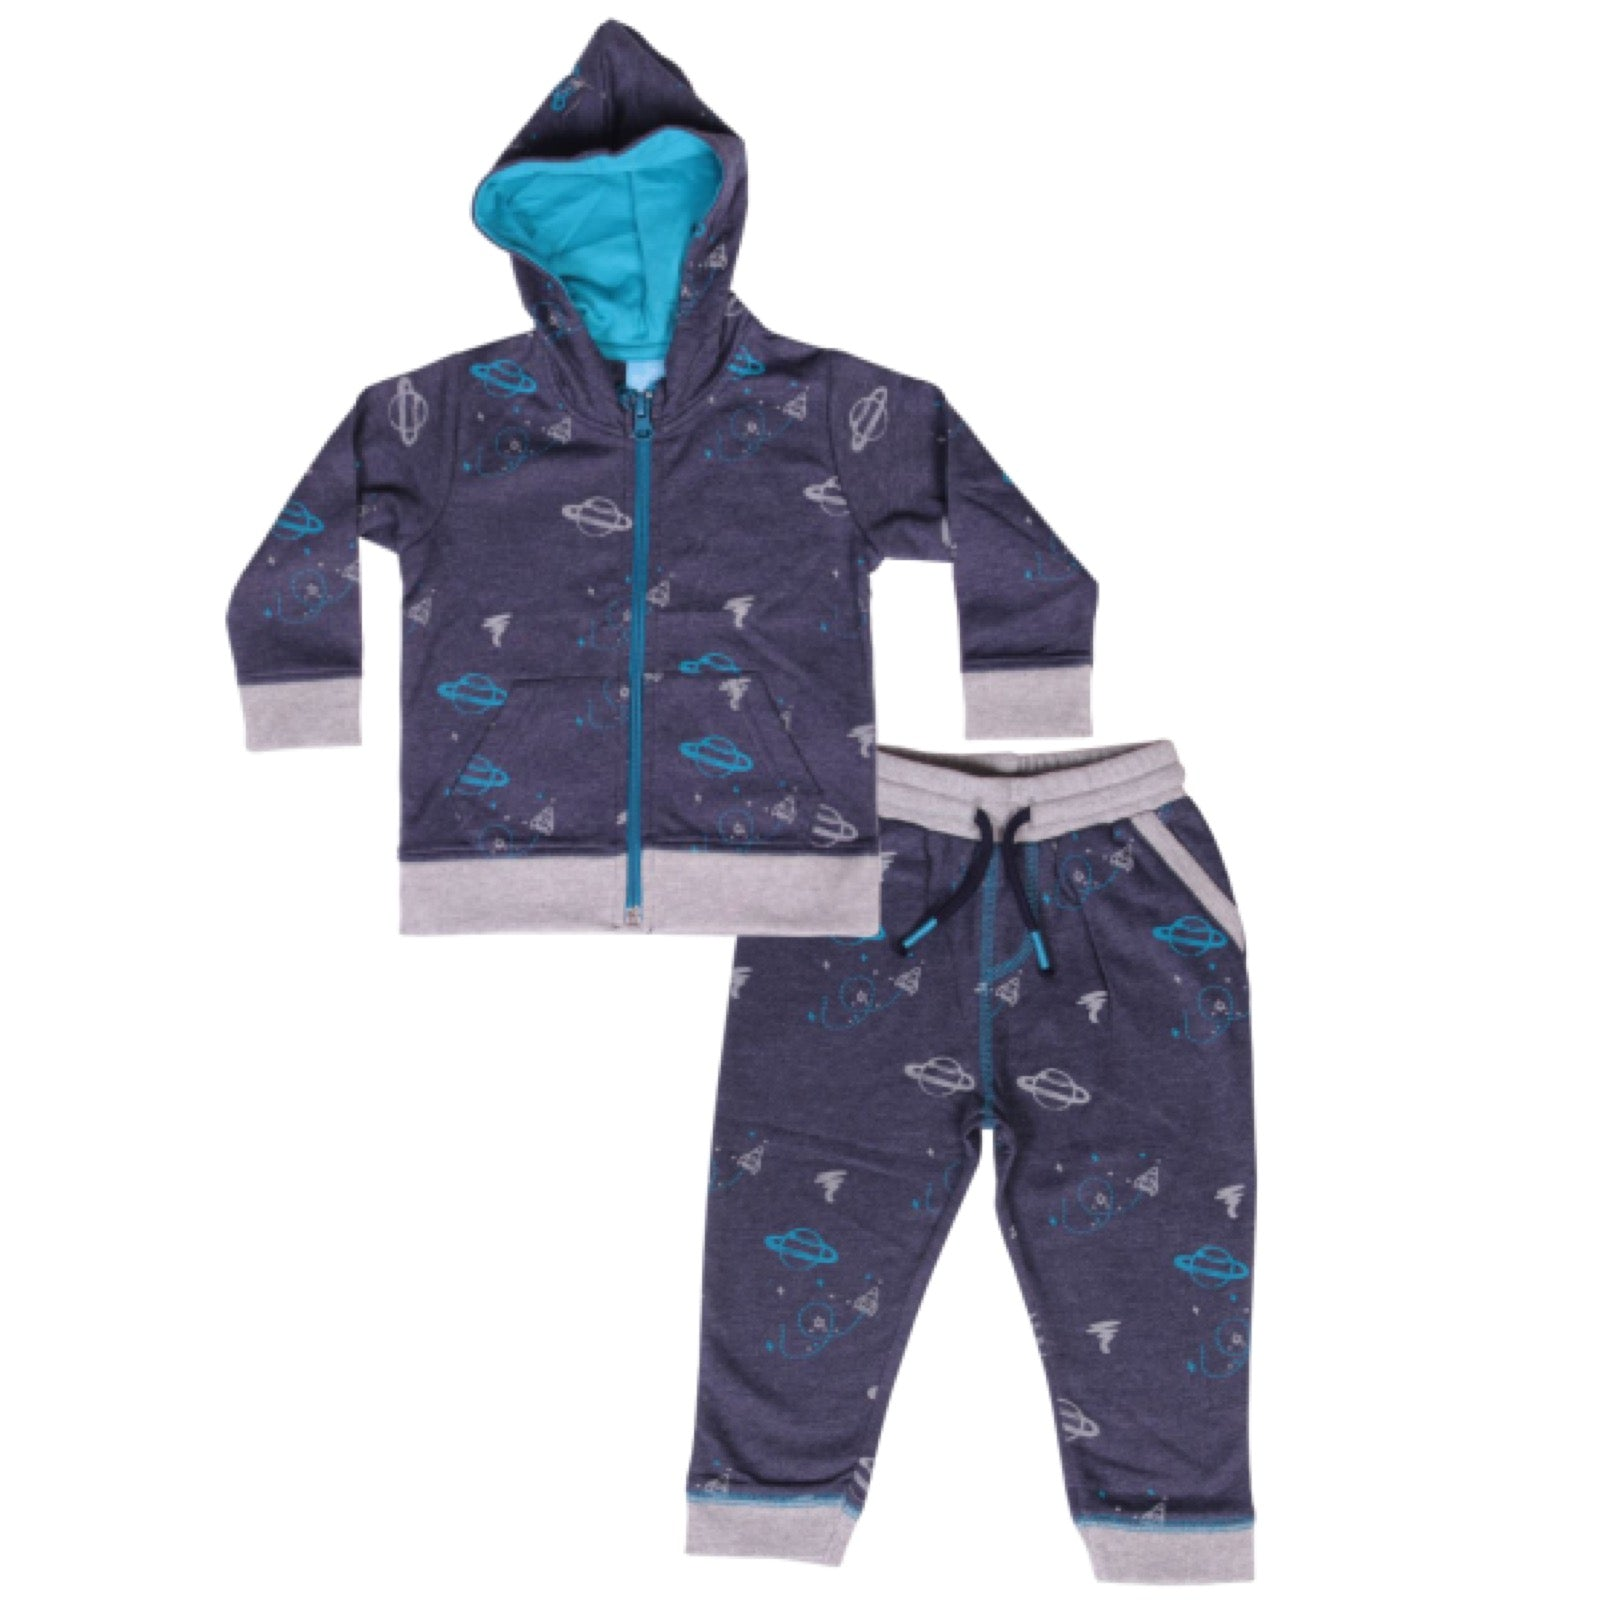 Casey 2 Piece Baby Set